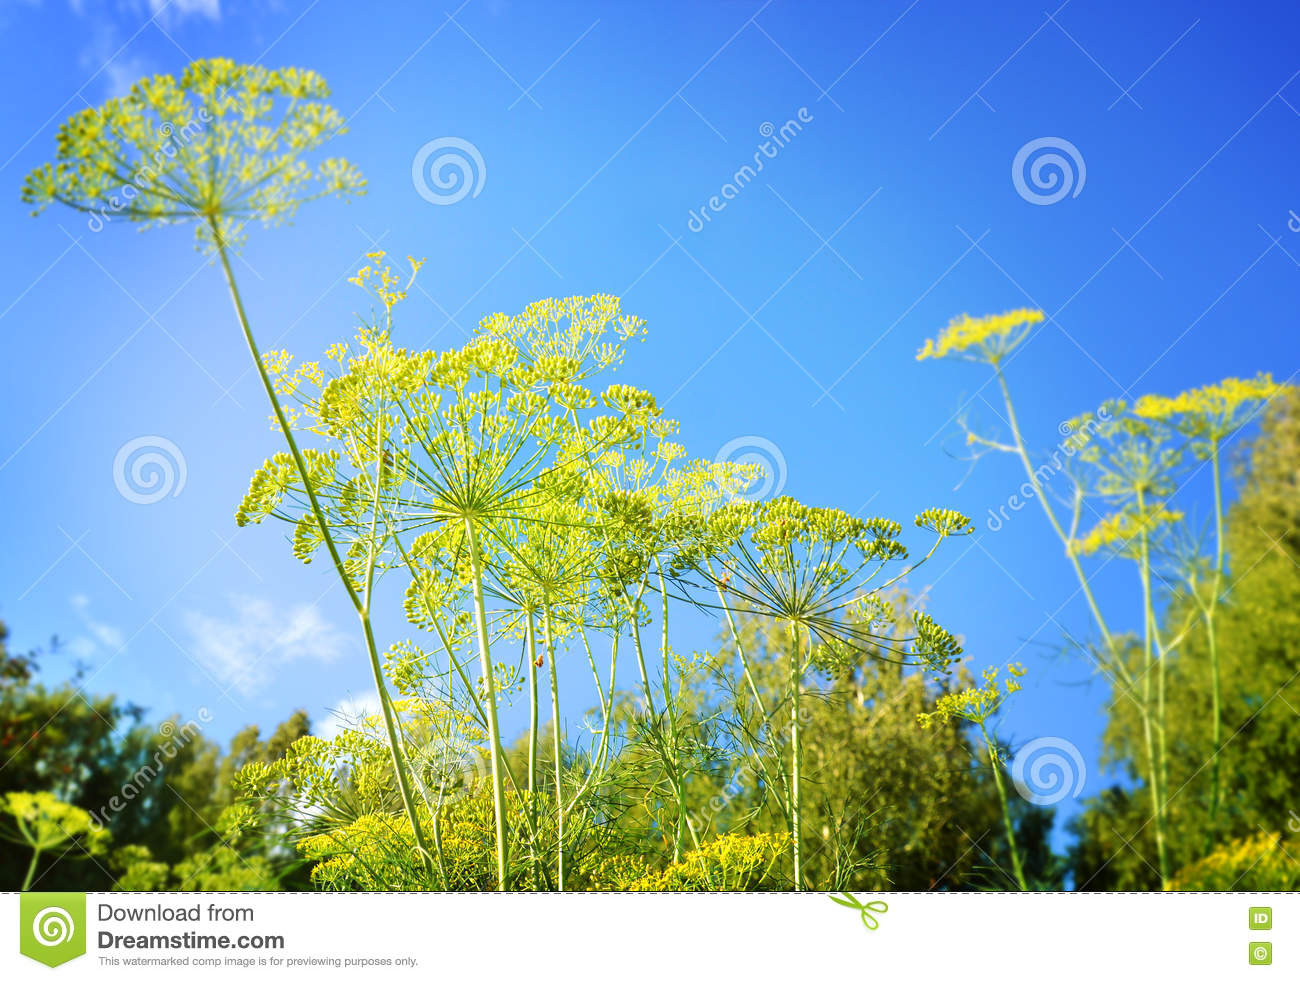 Dill Weed Flowers Set Against A Blue Sky With Puffy White Clouds